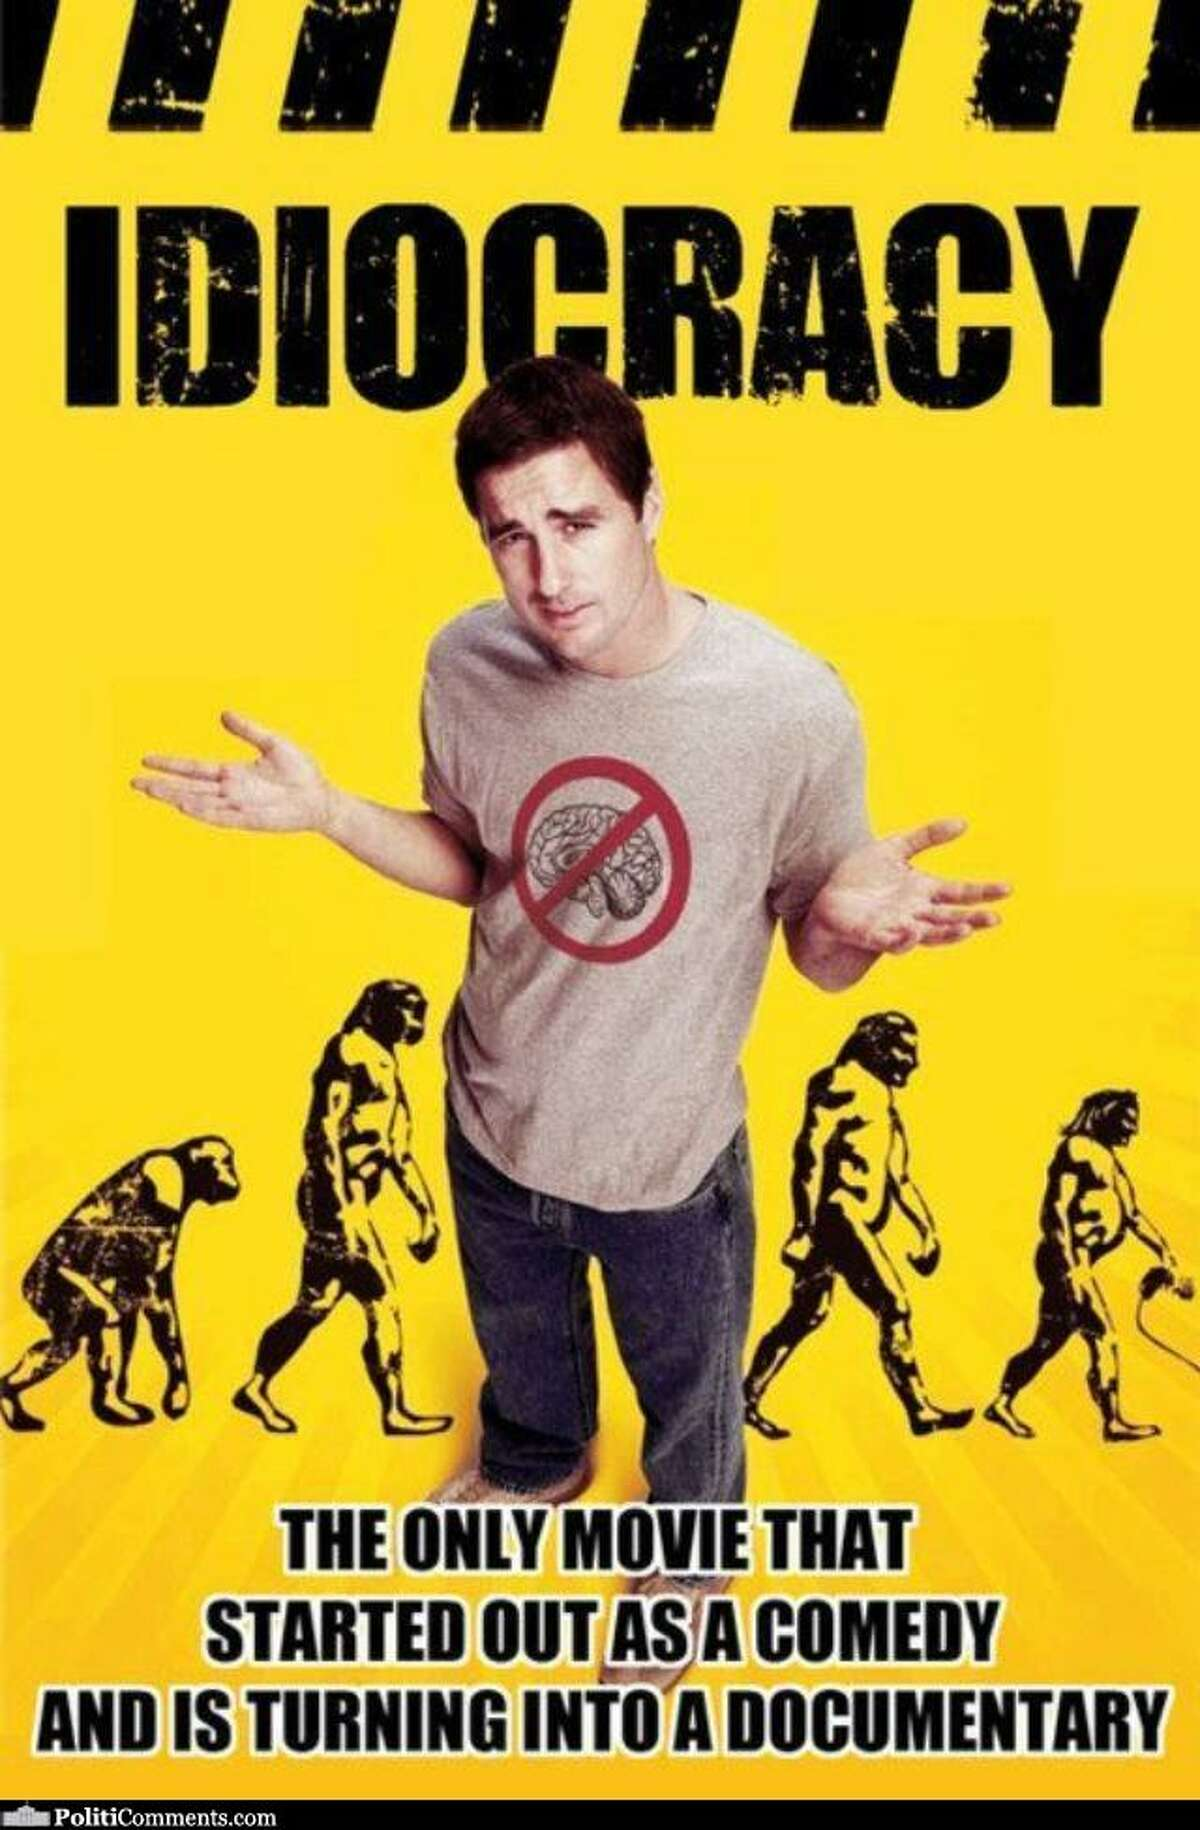 Prophetic? Many people who have devoured the comedy via DVD and streaming services have hailed as being accidentally prophetic within just a decade of its release.